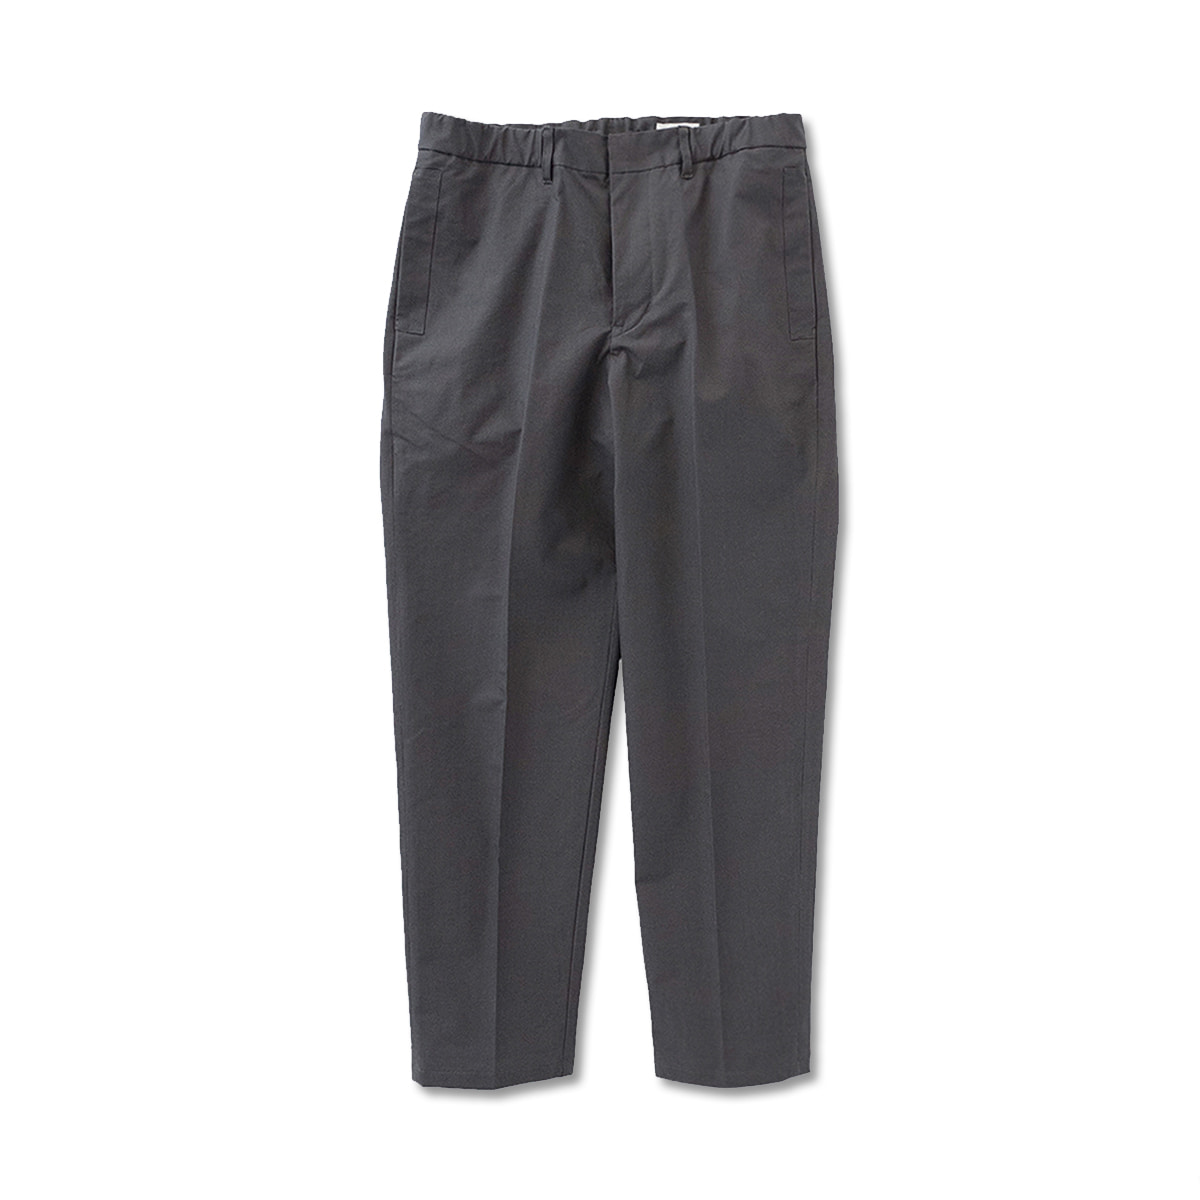 [STILL BY HAND] PT0493OS - COTTON TAPERED PANTS 'CHARCOAL'